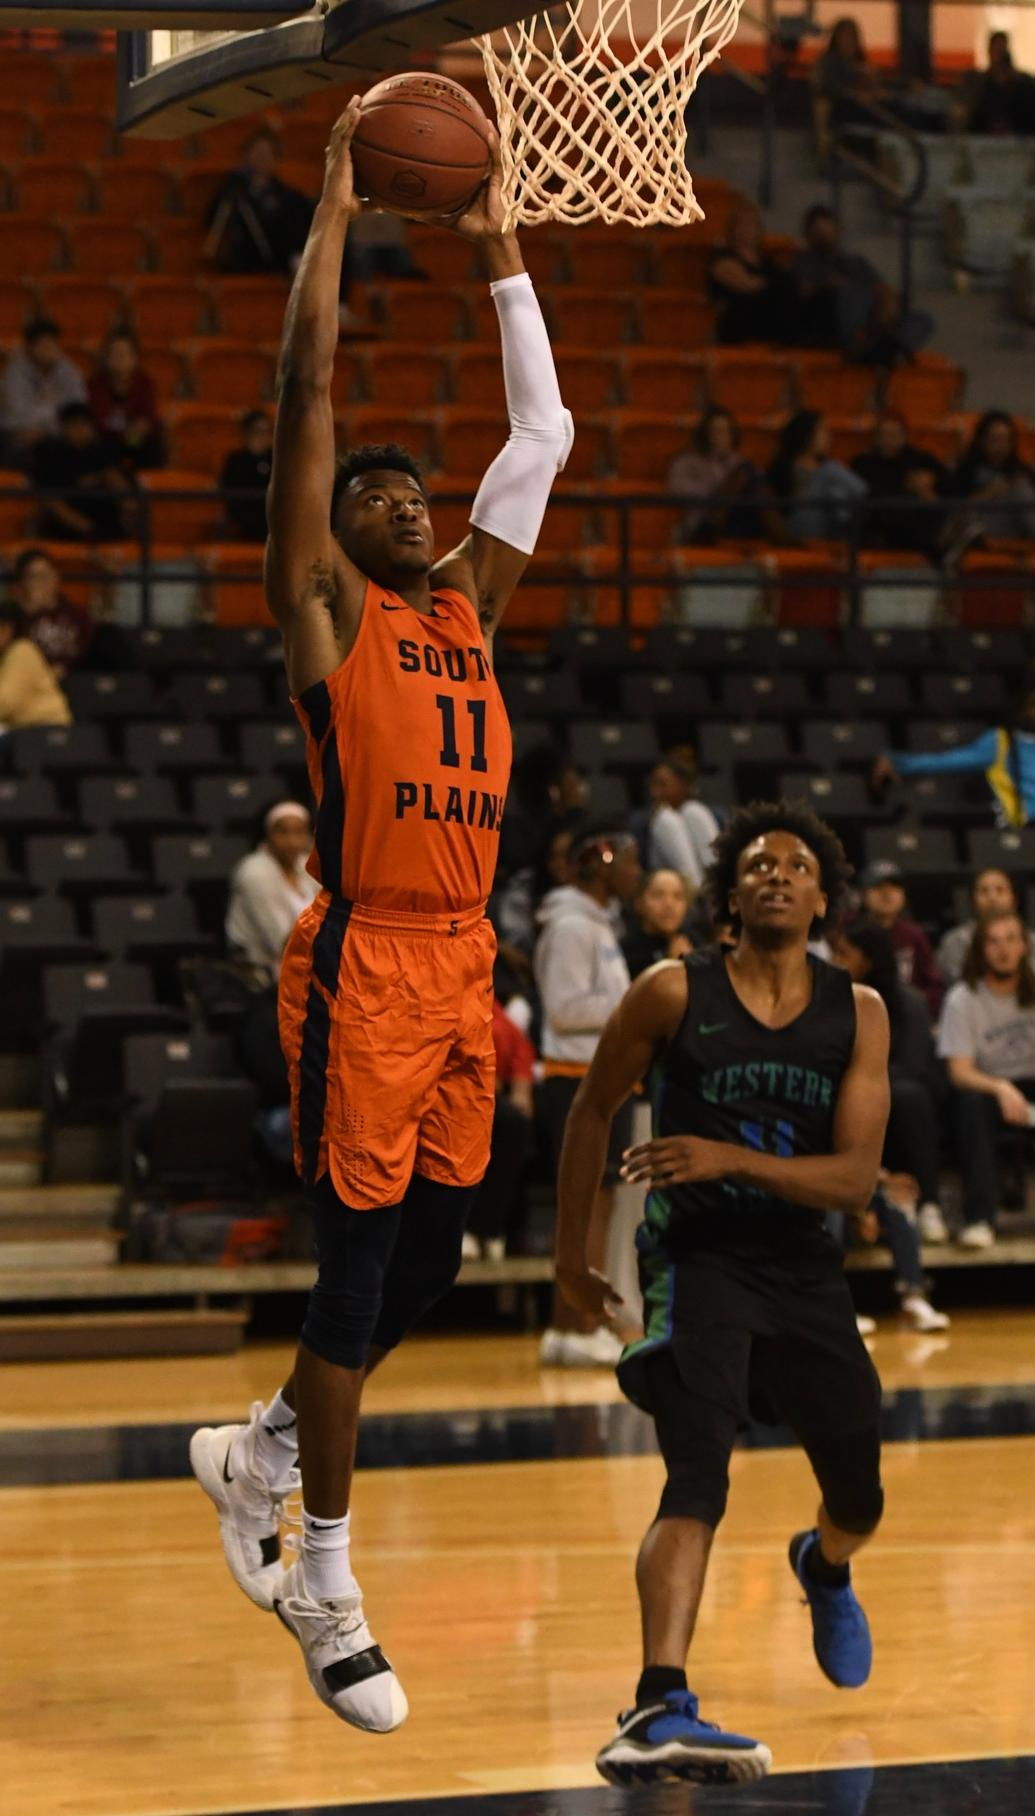 Prim scores 26 as No. 7 Texans rout Western Texas 98-68 Monday